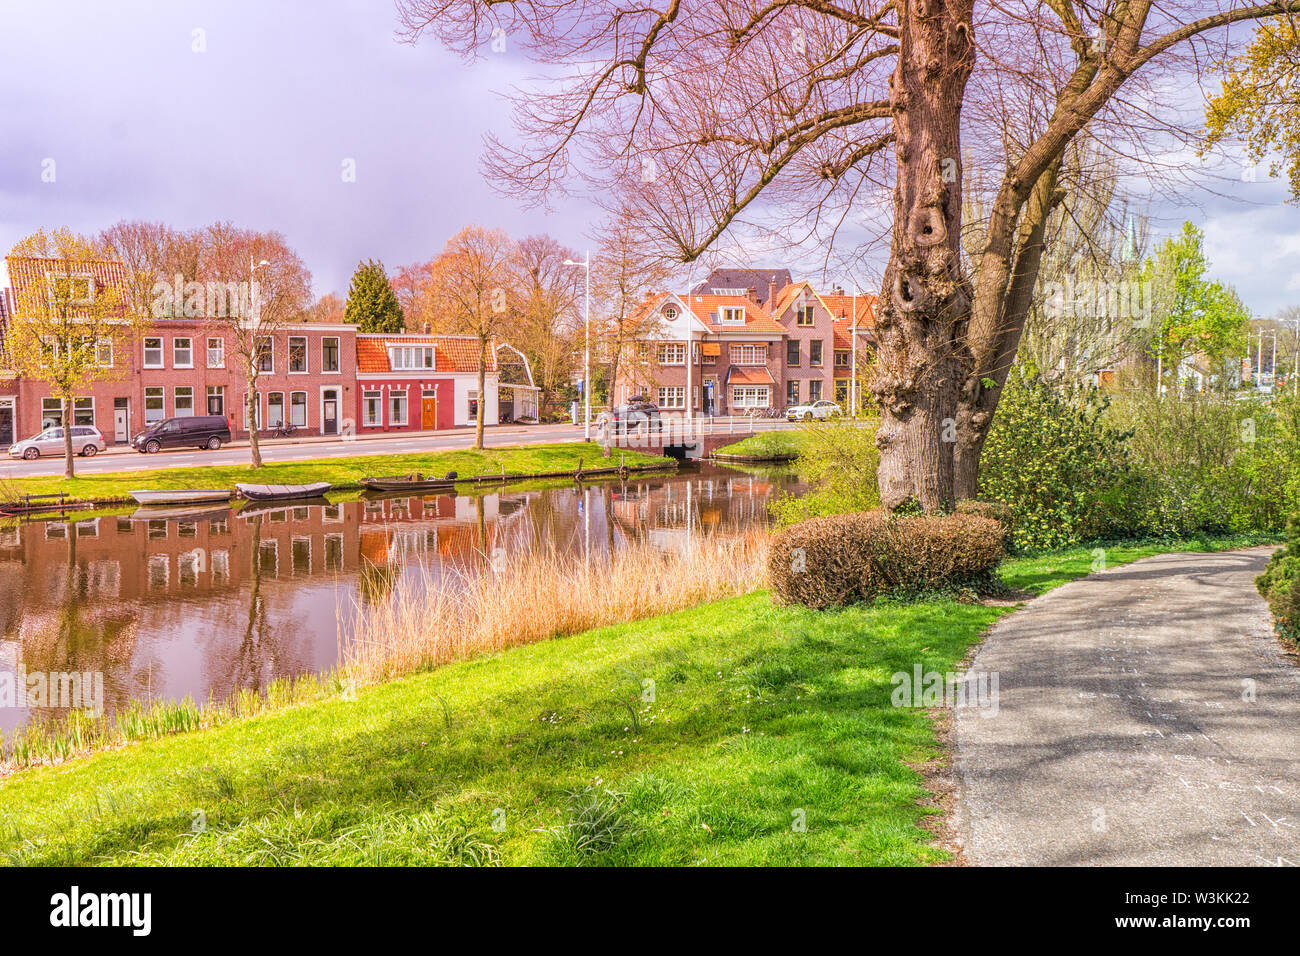 Typical view of a small Dutch town. - Stock Image